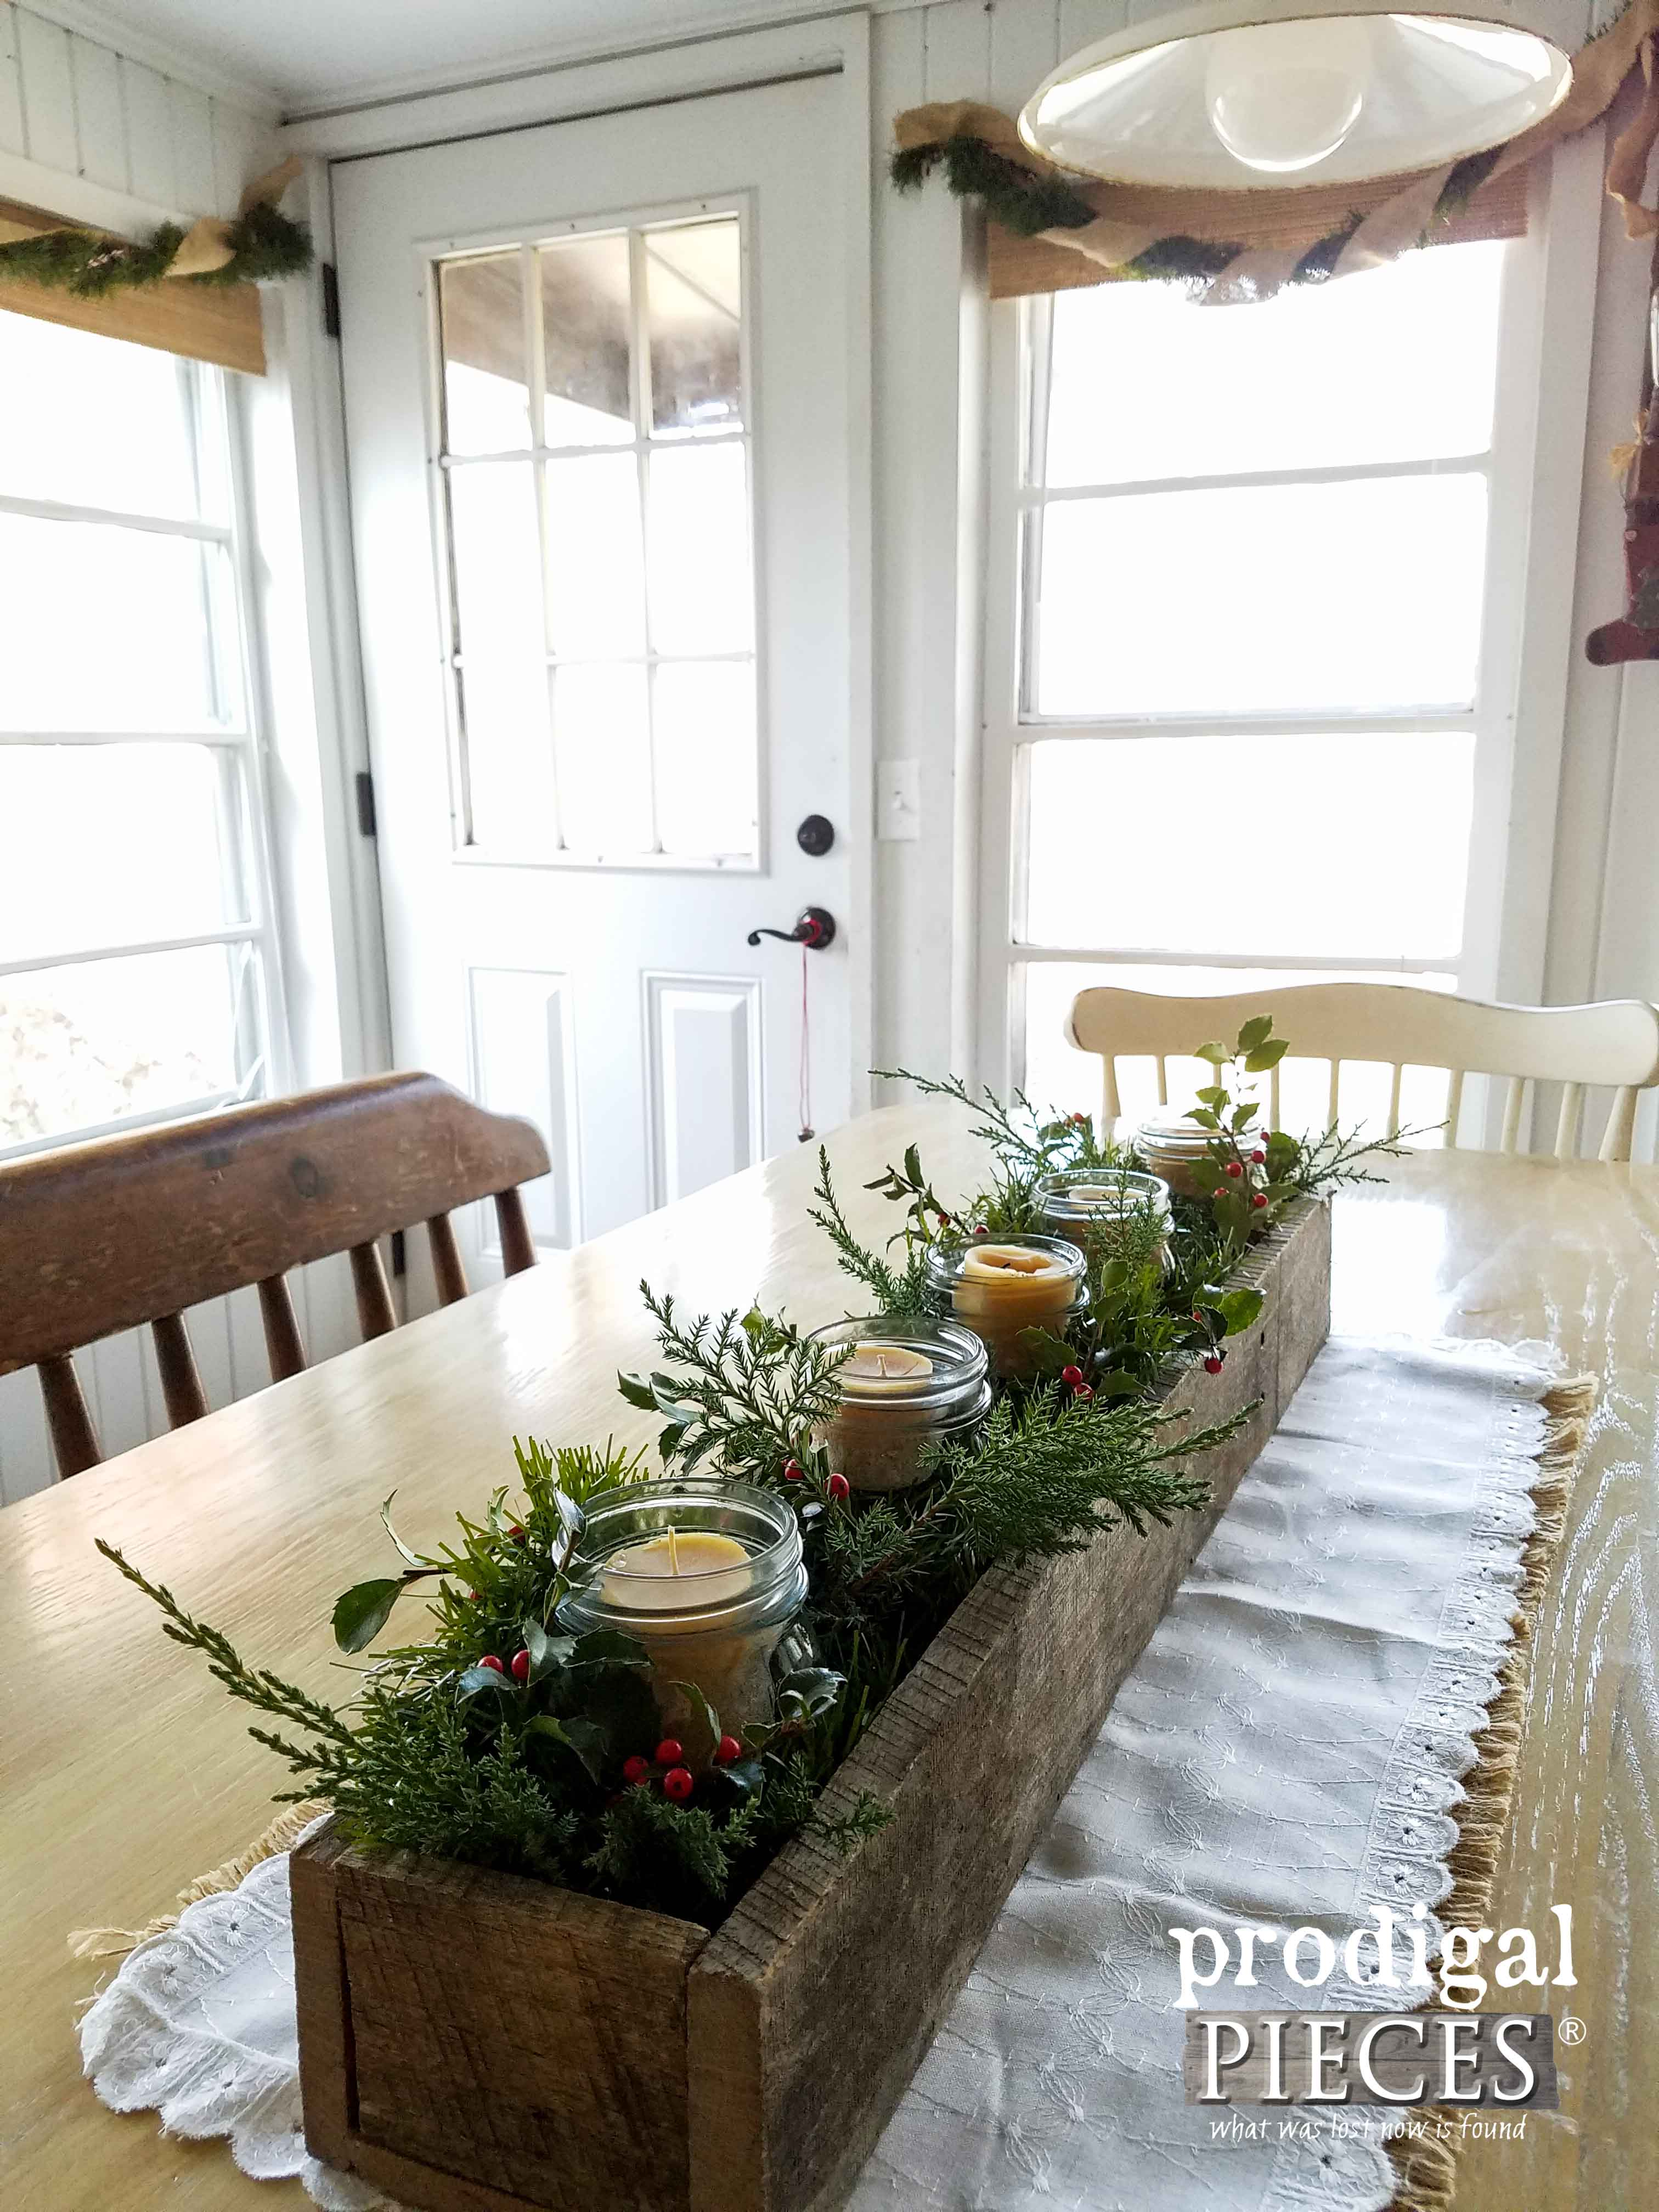 Reclaimed Wood Centerpiece for Simple Christmas Decor by Prodigal Pieces | www.prodigalpieces.com